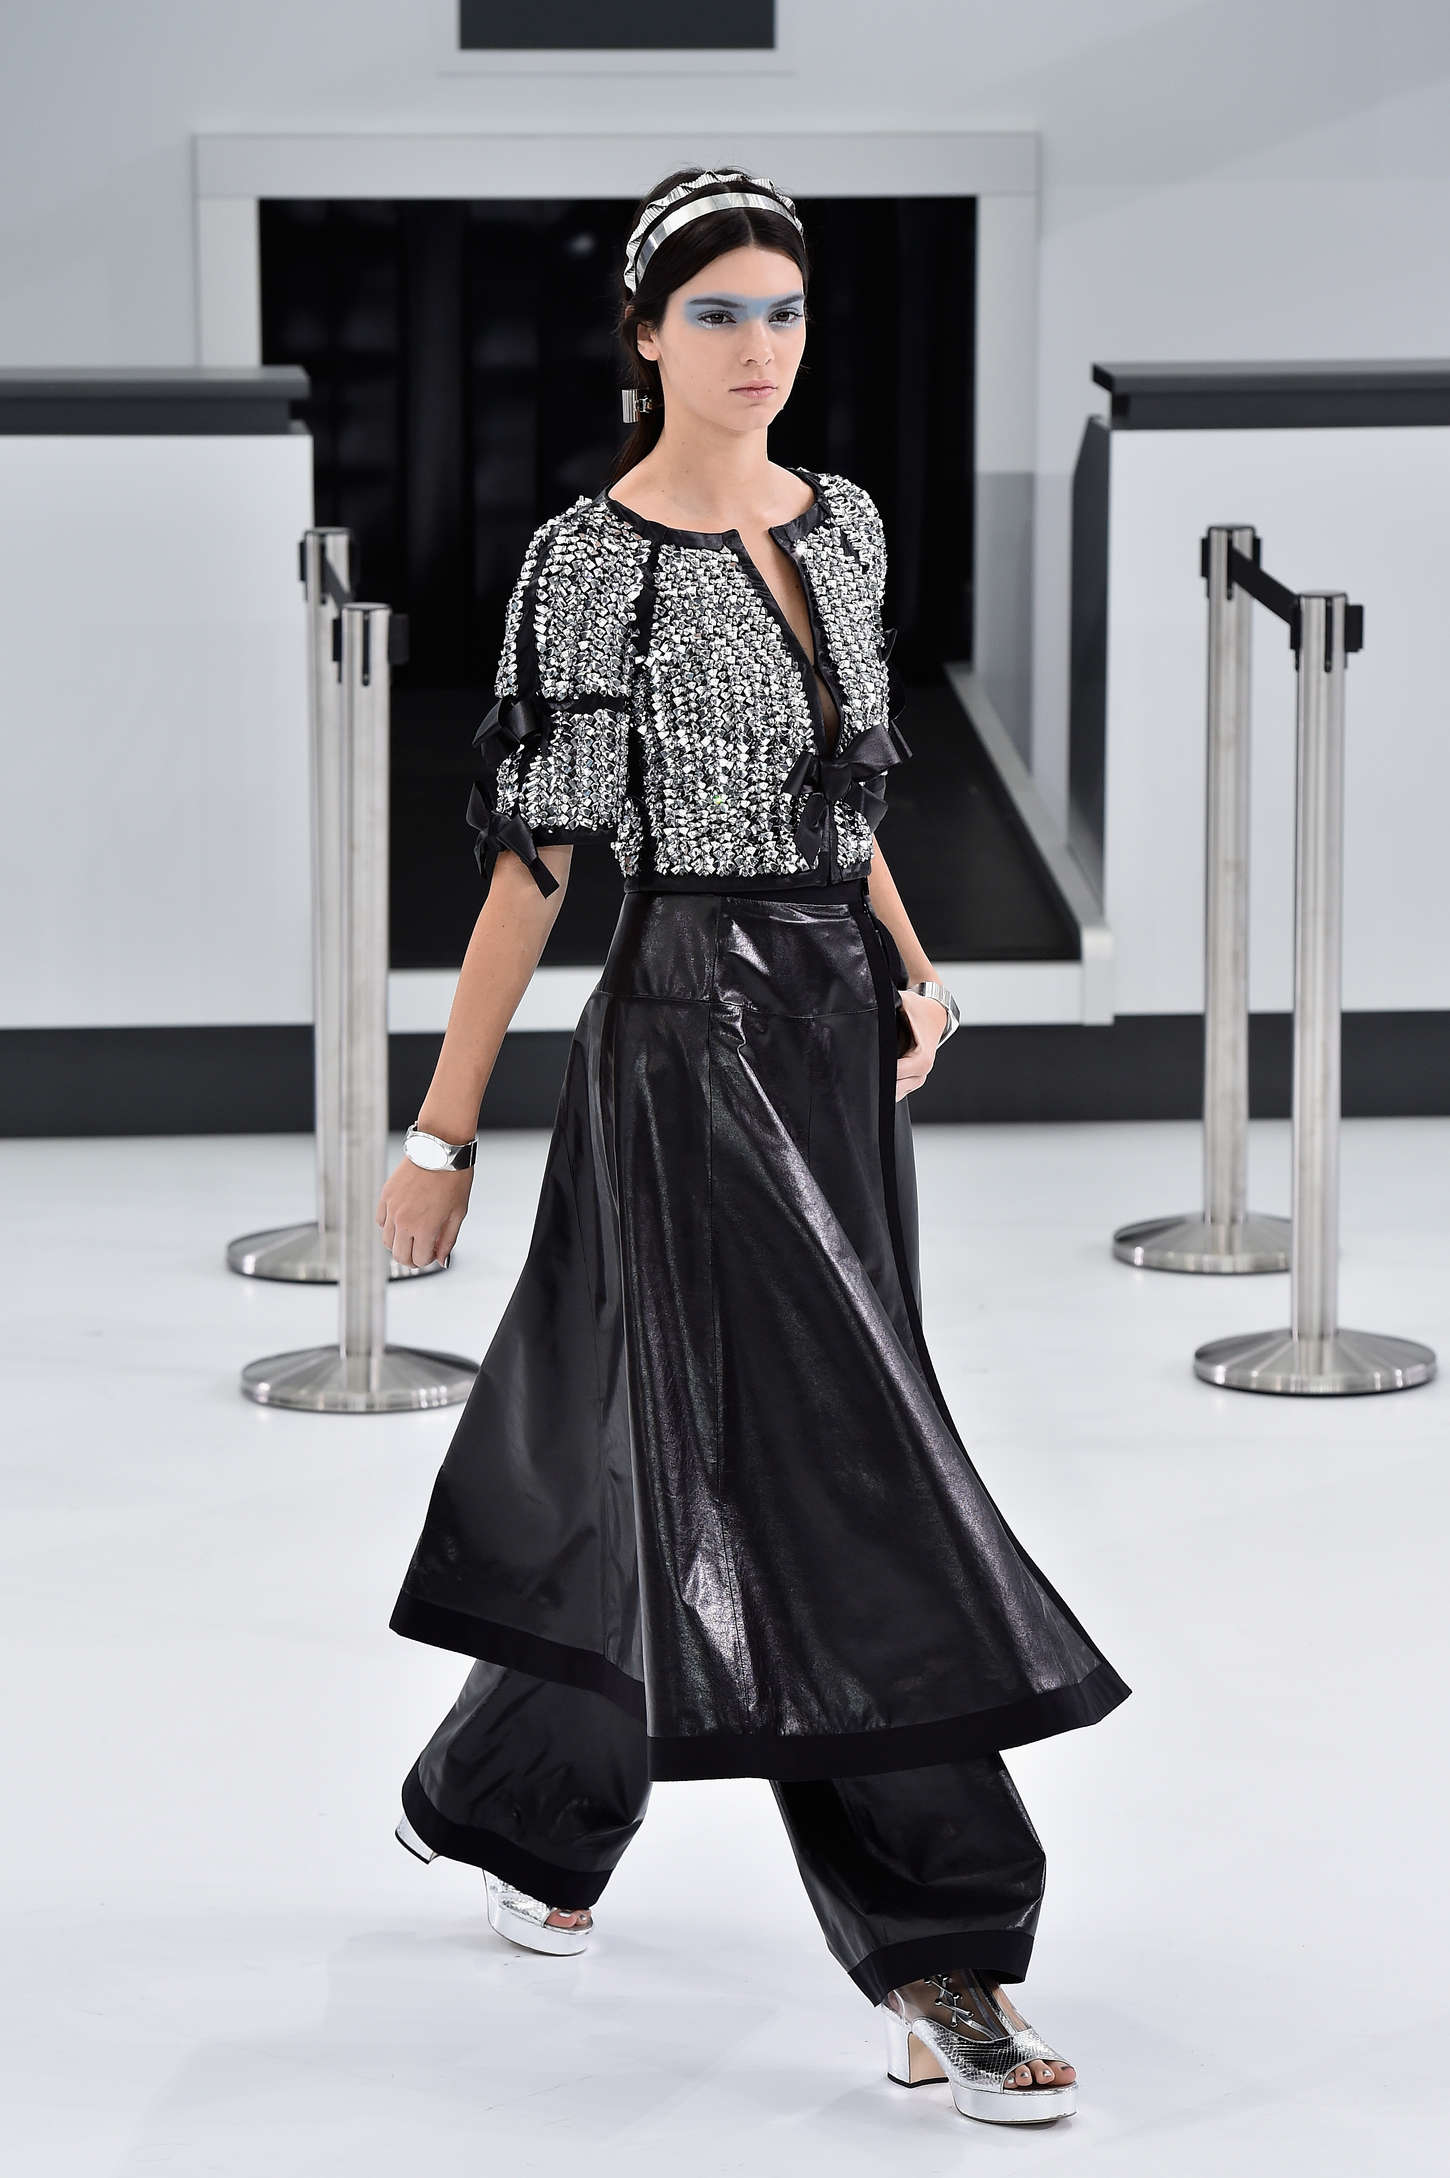 Kendall Jenner Chanel Show At Paris Fashion Week